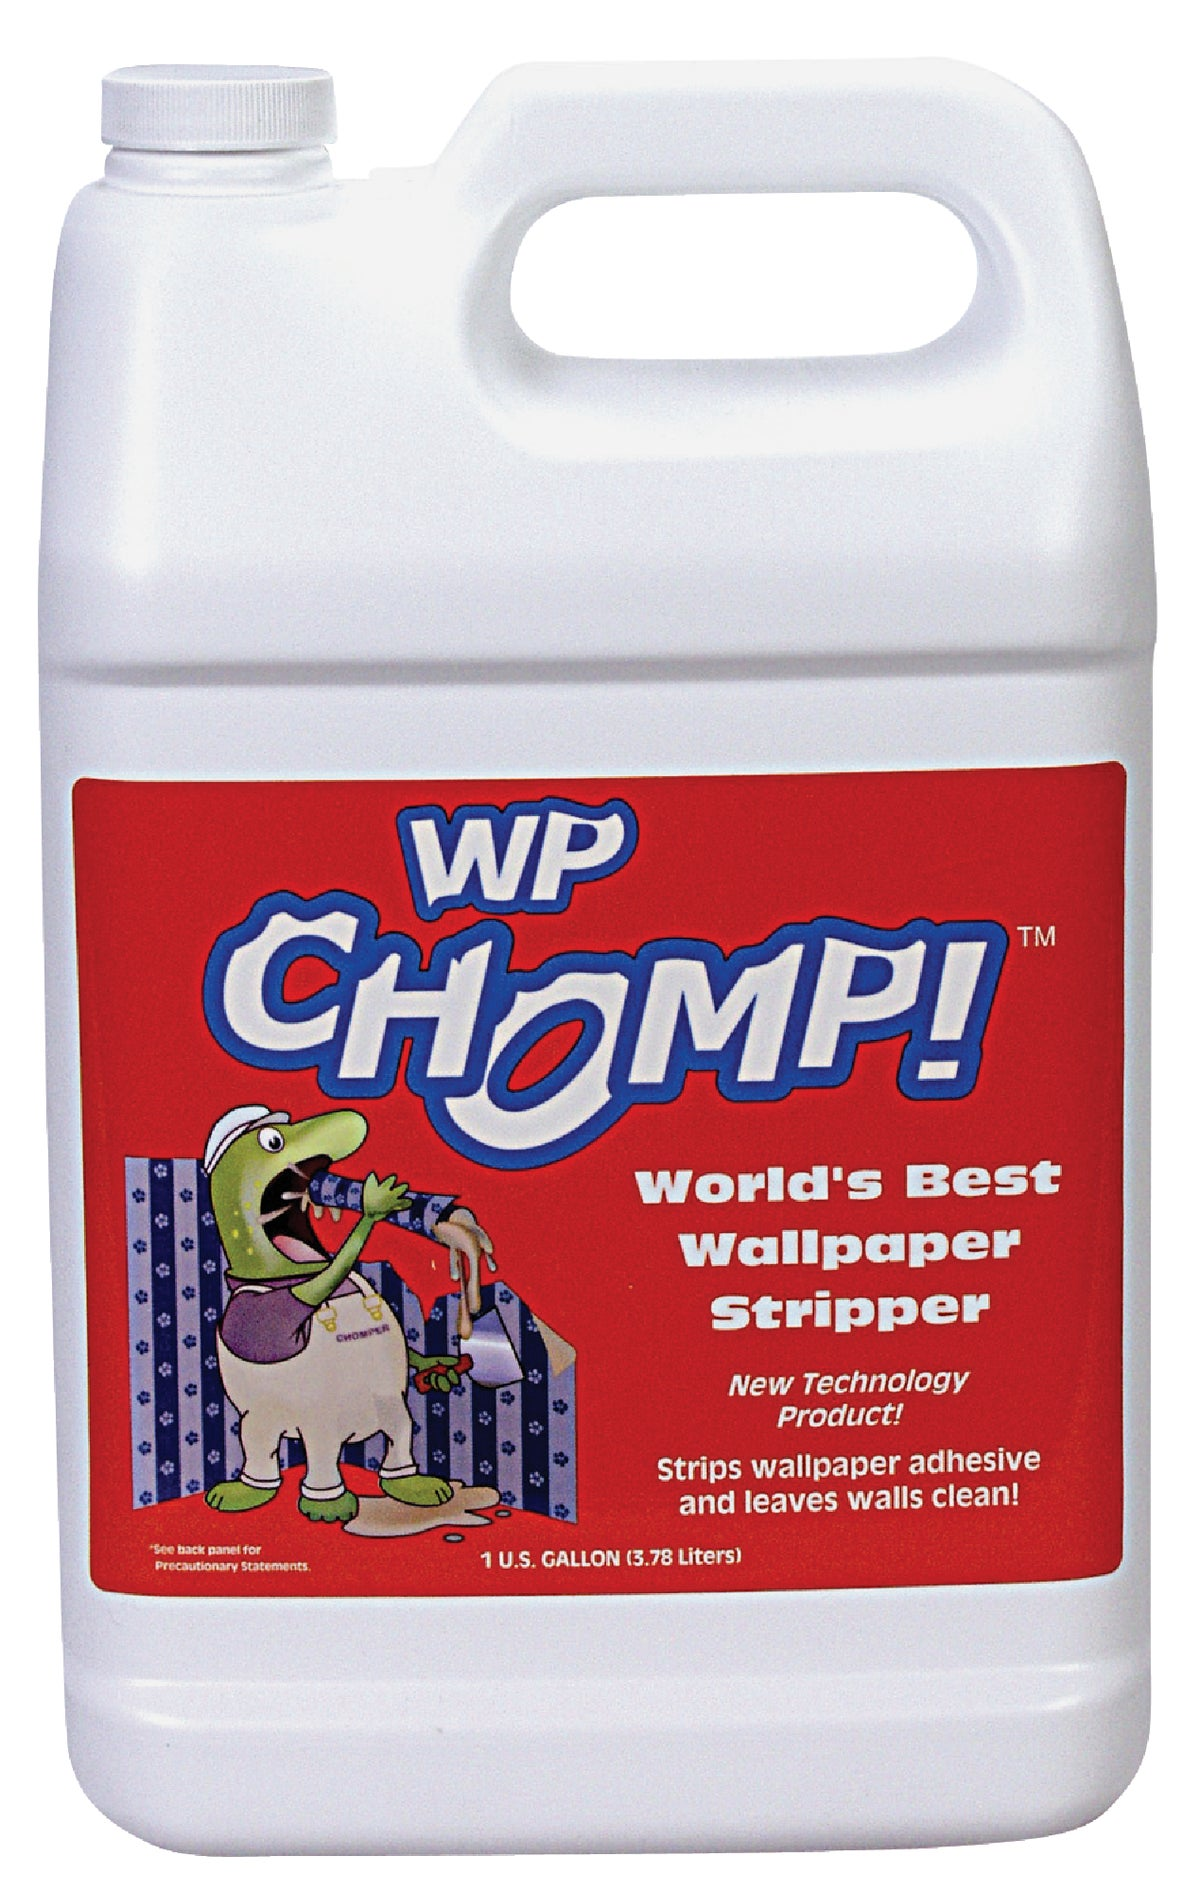 WP Chomp World's Best Wallpaper Stripper Citrus Scent and Sticky Paste Remover